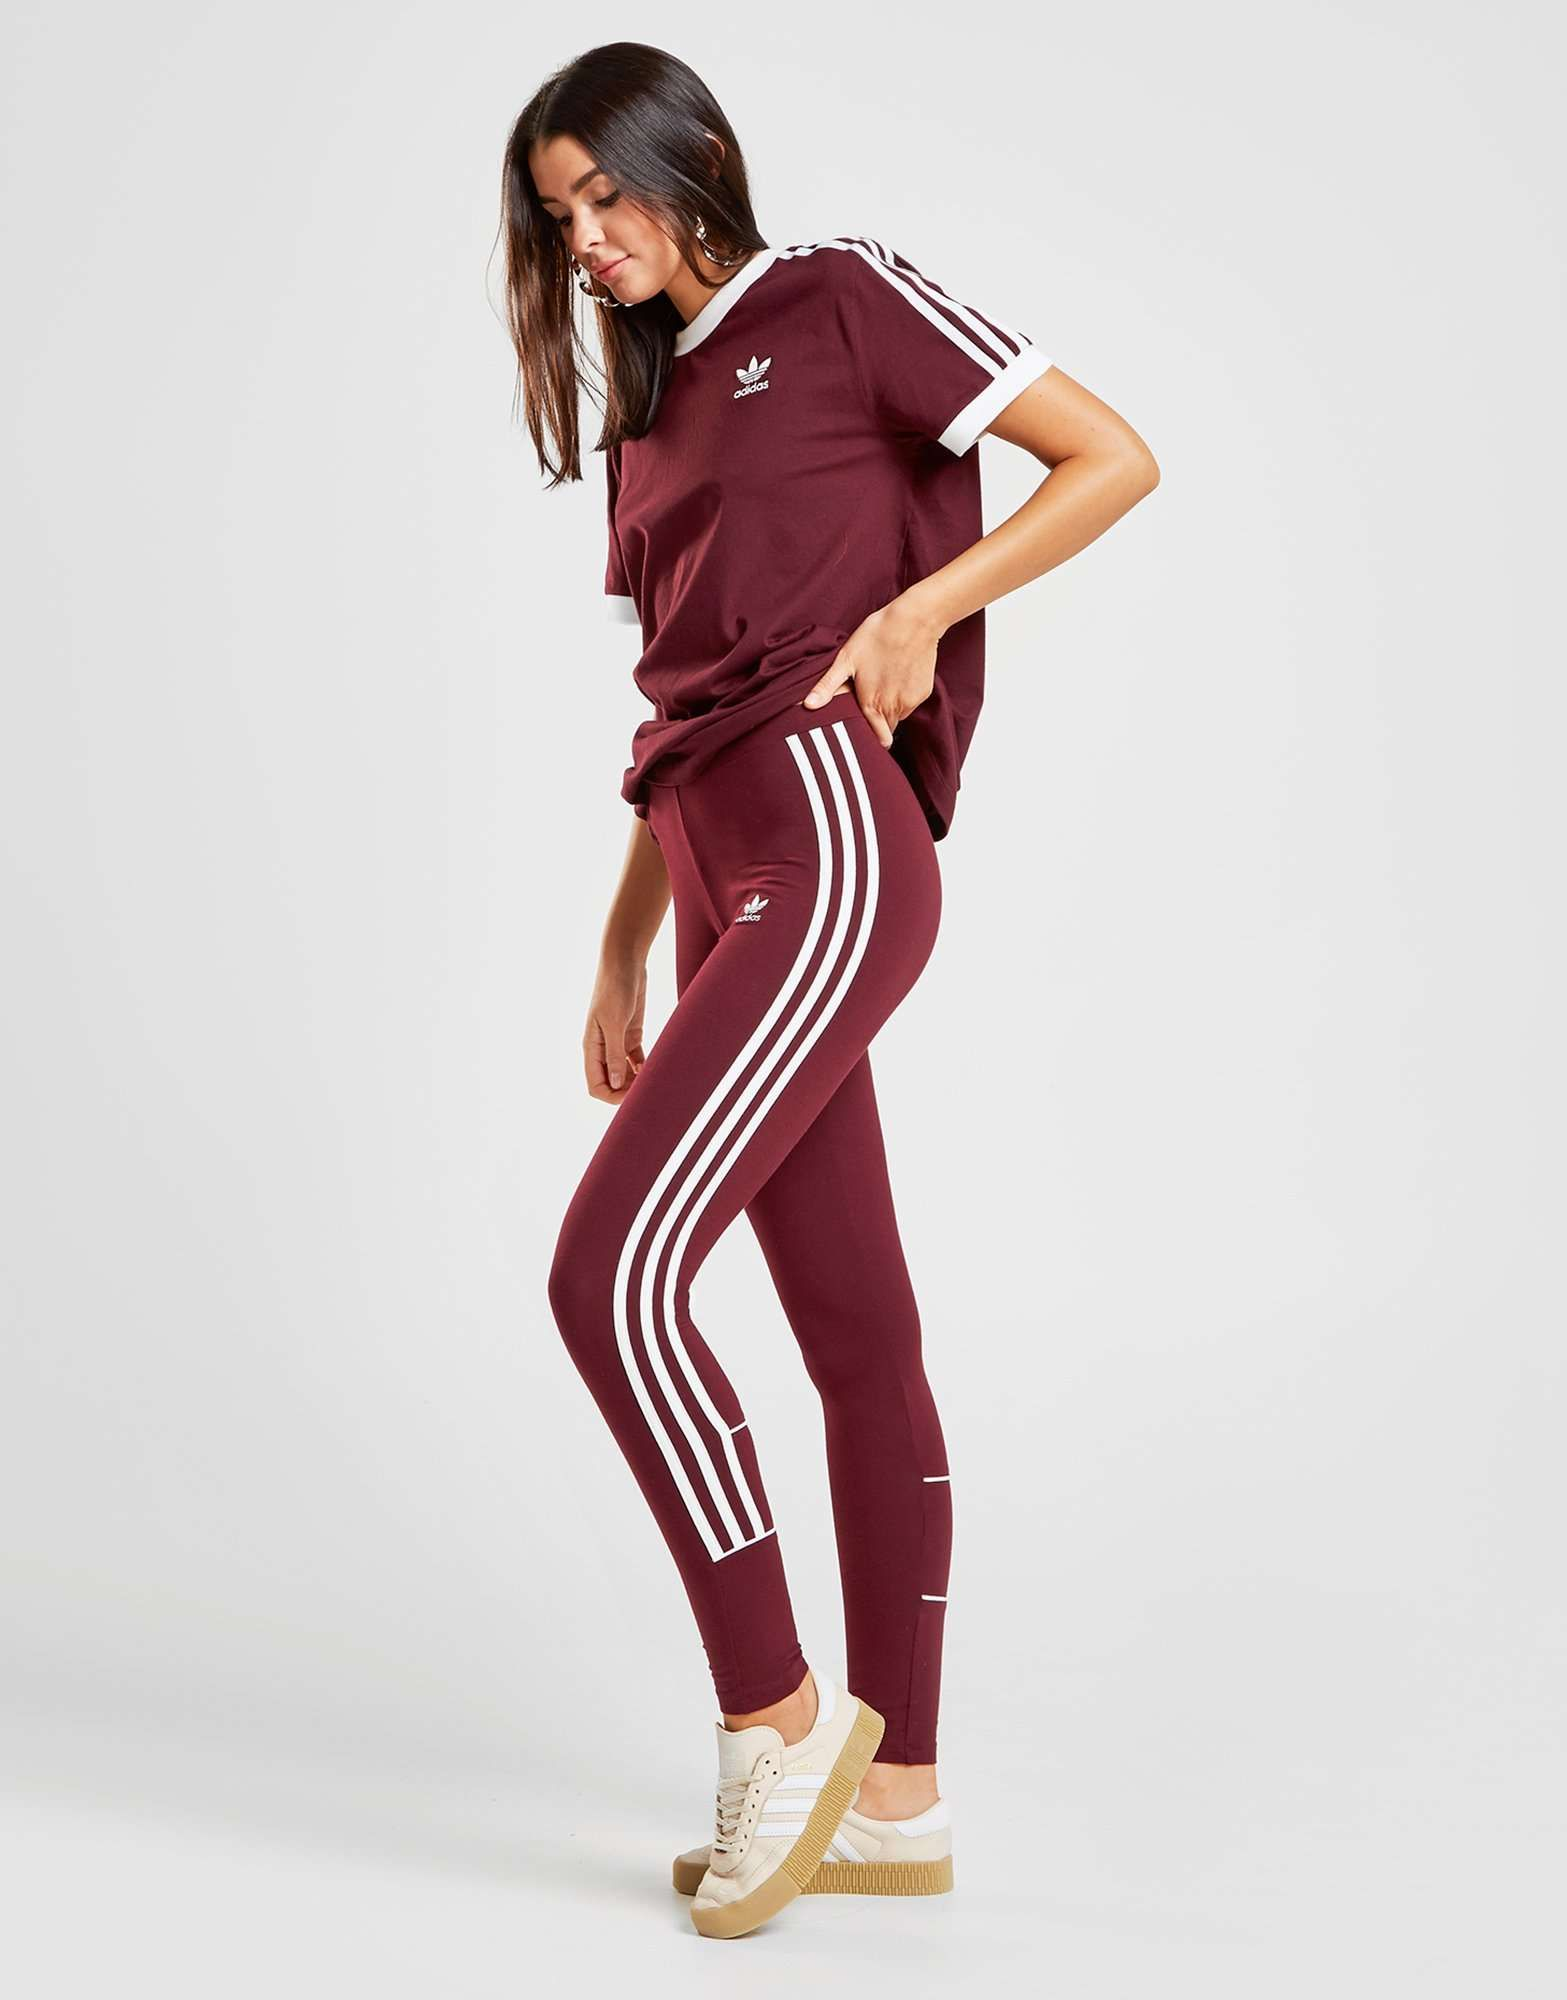 Adidas Originals 3 Stripes Piping Leggings Shop Online For Adidas Originals 3 Stripes Piping Leggings With Jd Sports The Uk S Retail Fashion Fashion Clothes